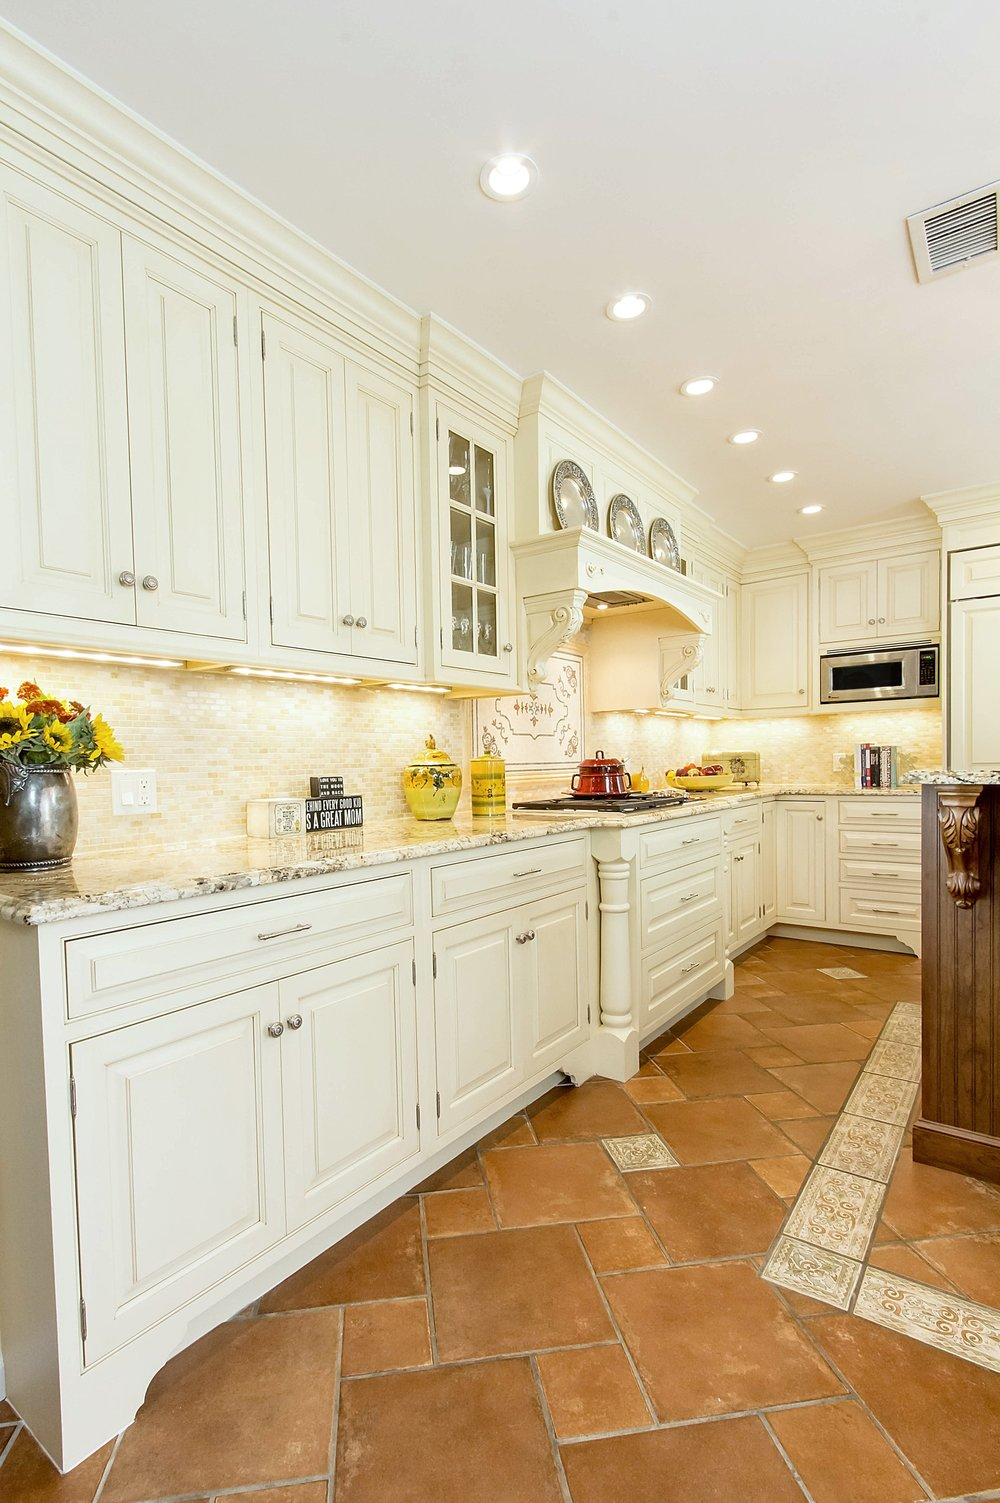 Traditional style kitchen with long counter top and recessed lights